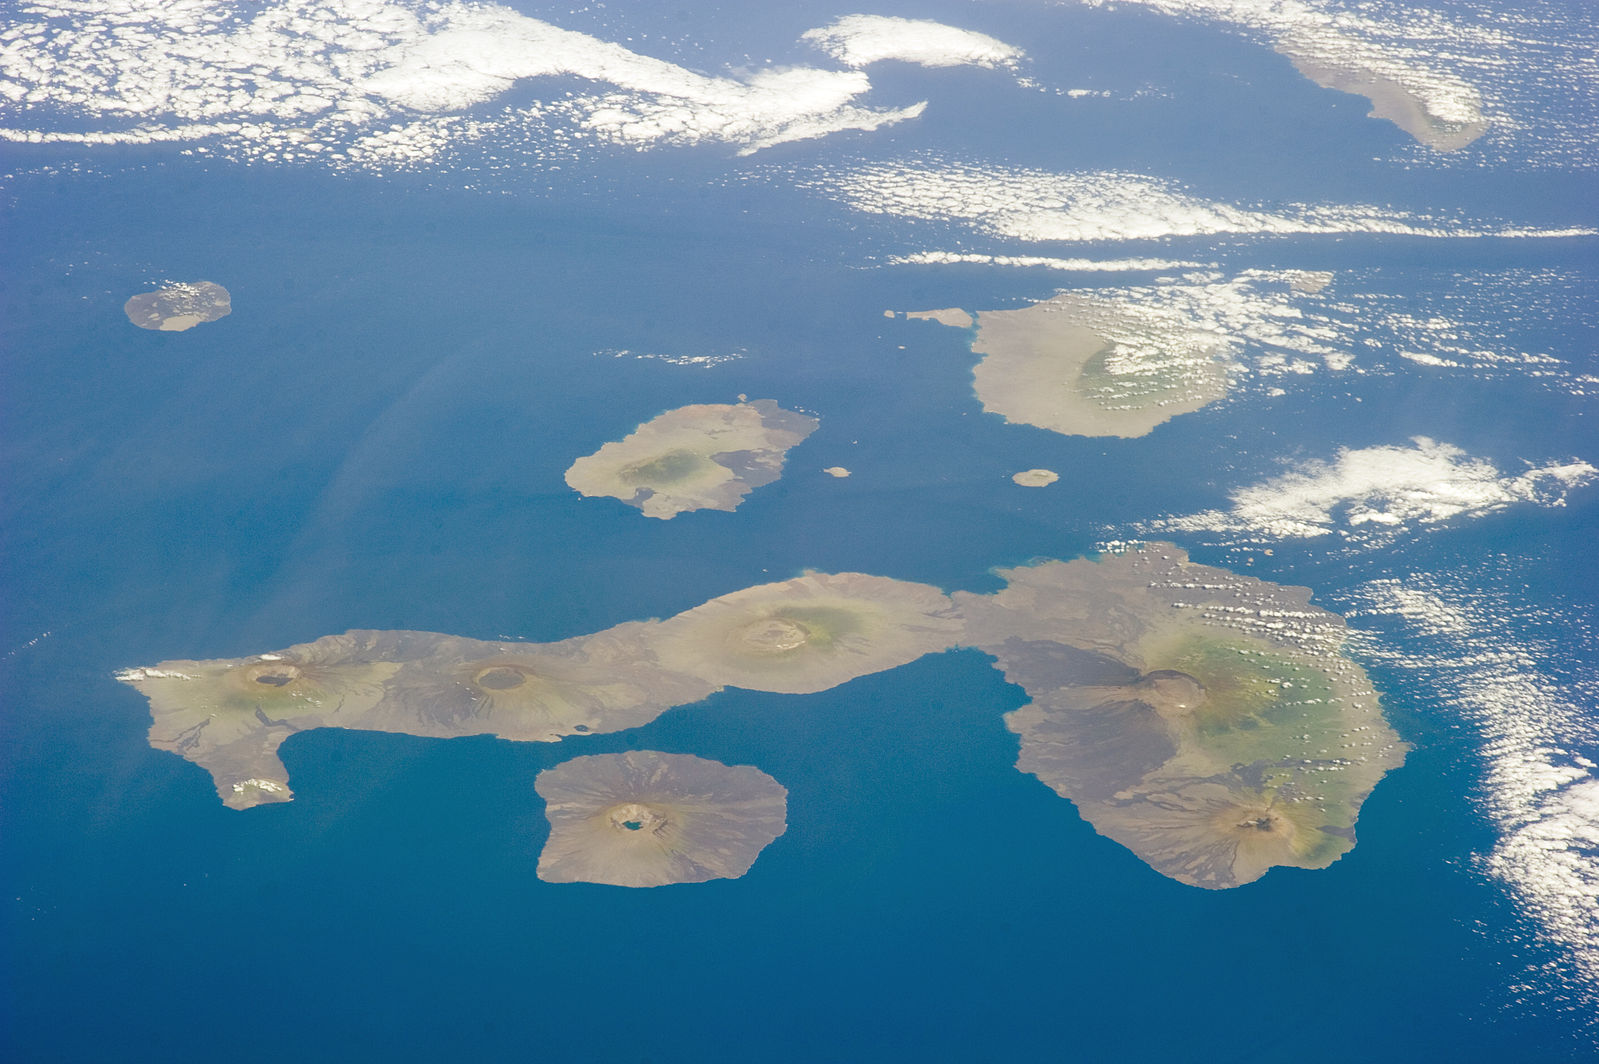 The living laboratory: Why the Galapagos Islands are a World Heritage Site